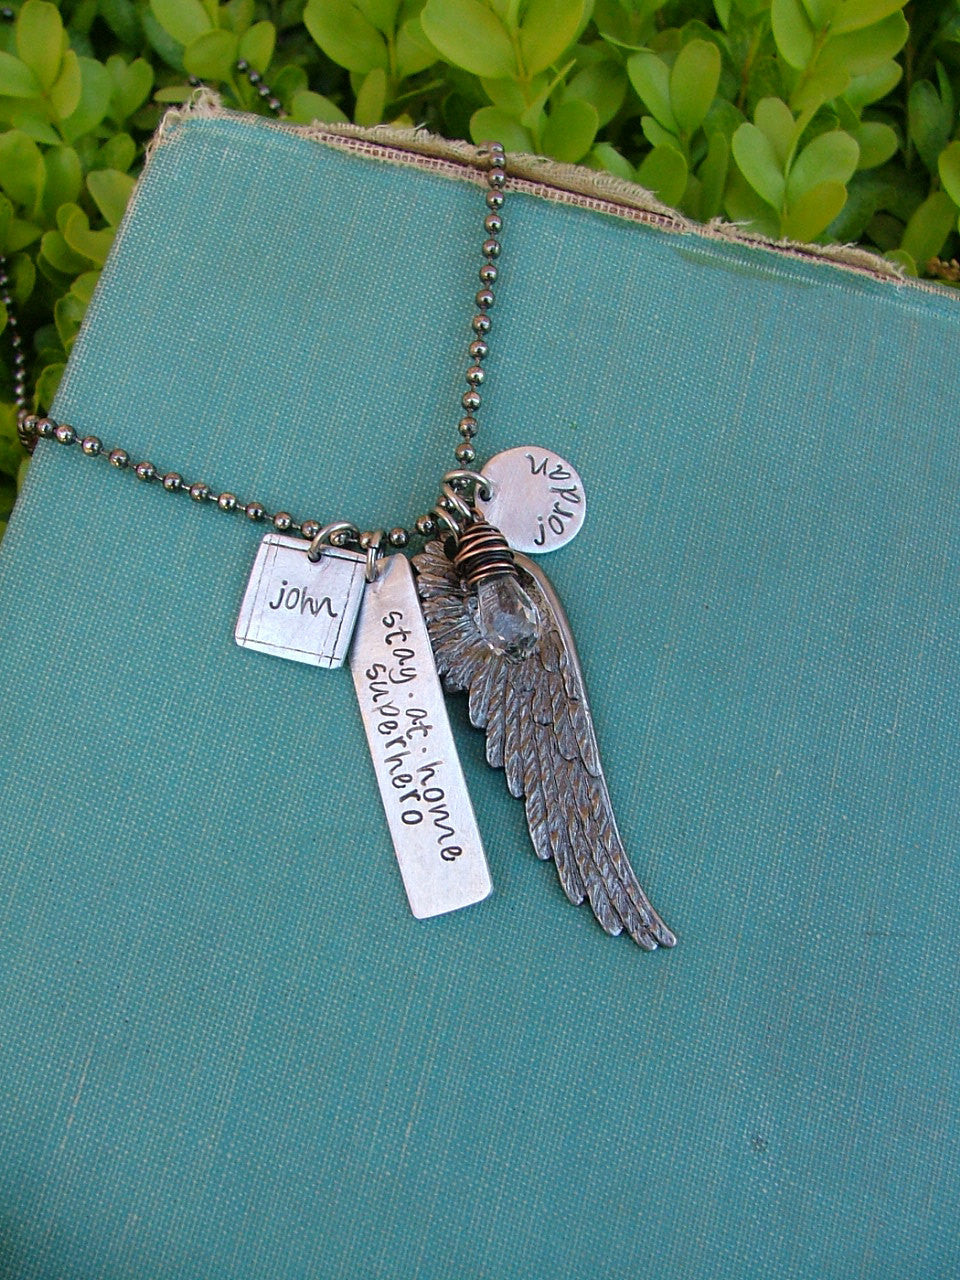 Stay At Home Superhero XL Extra Long Necklace with Limited Edition Wing Pendant Signature Hand Stamped Mommy Necklace - by MyBella